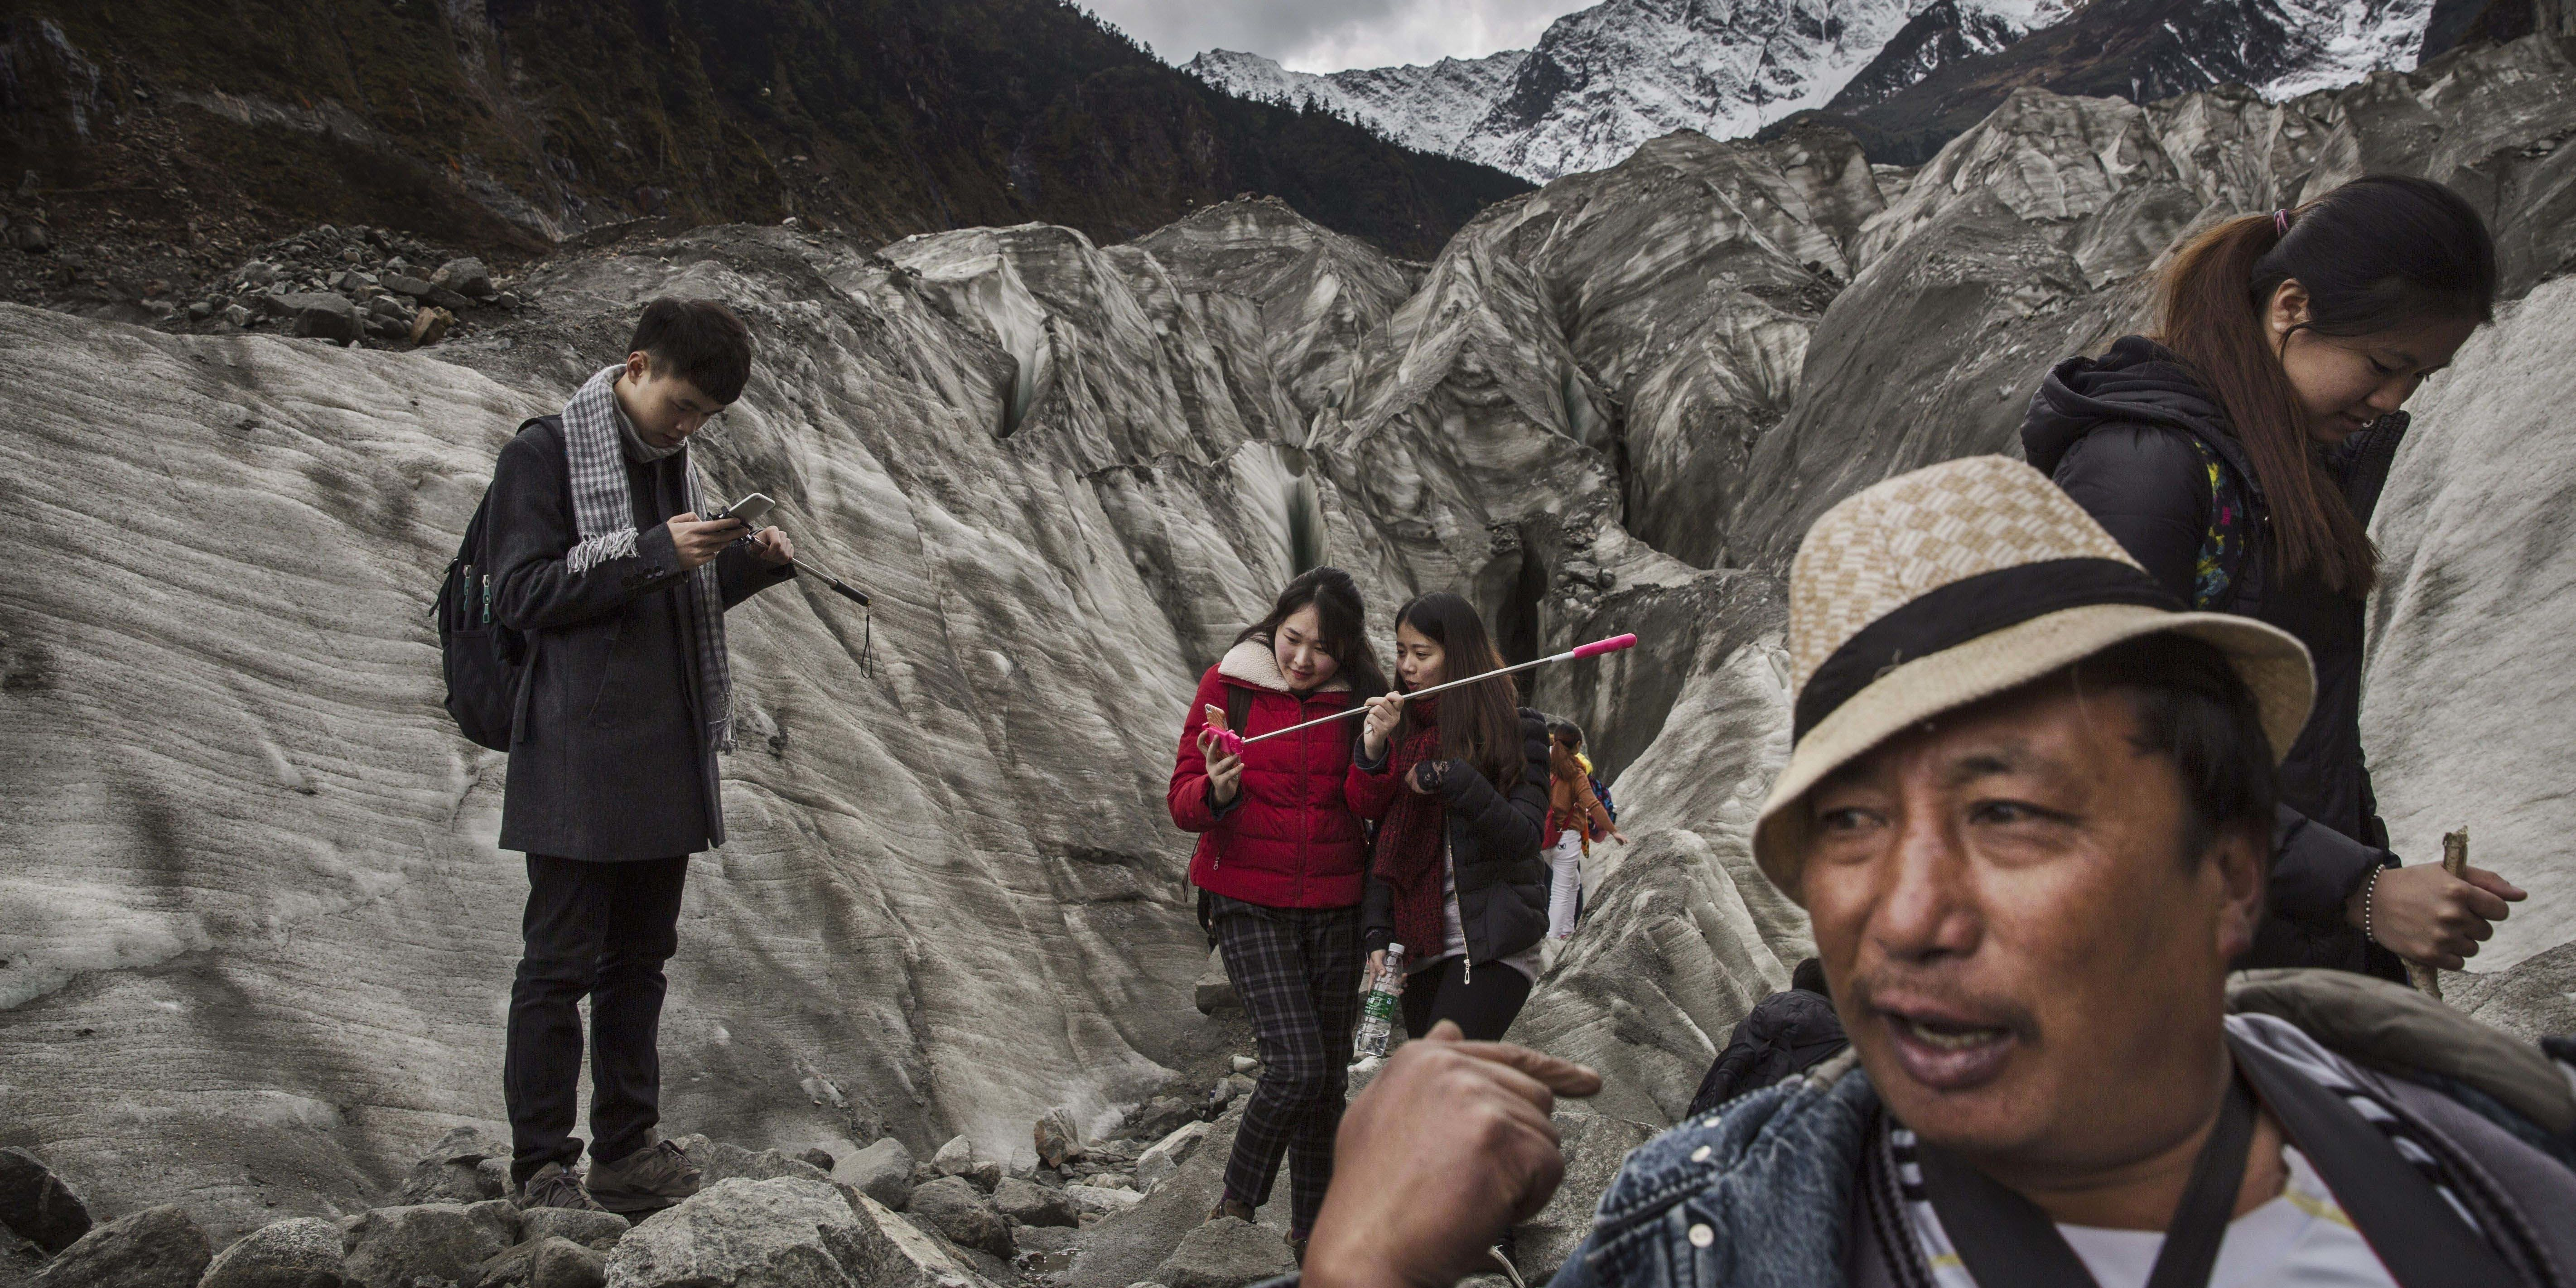 Tourists in China visit a rapidly retreating glacier.